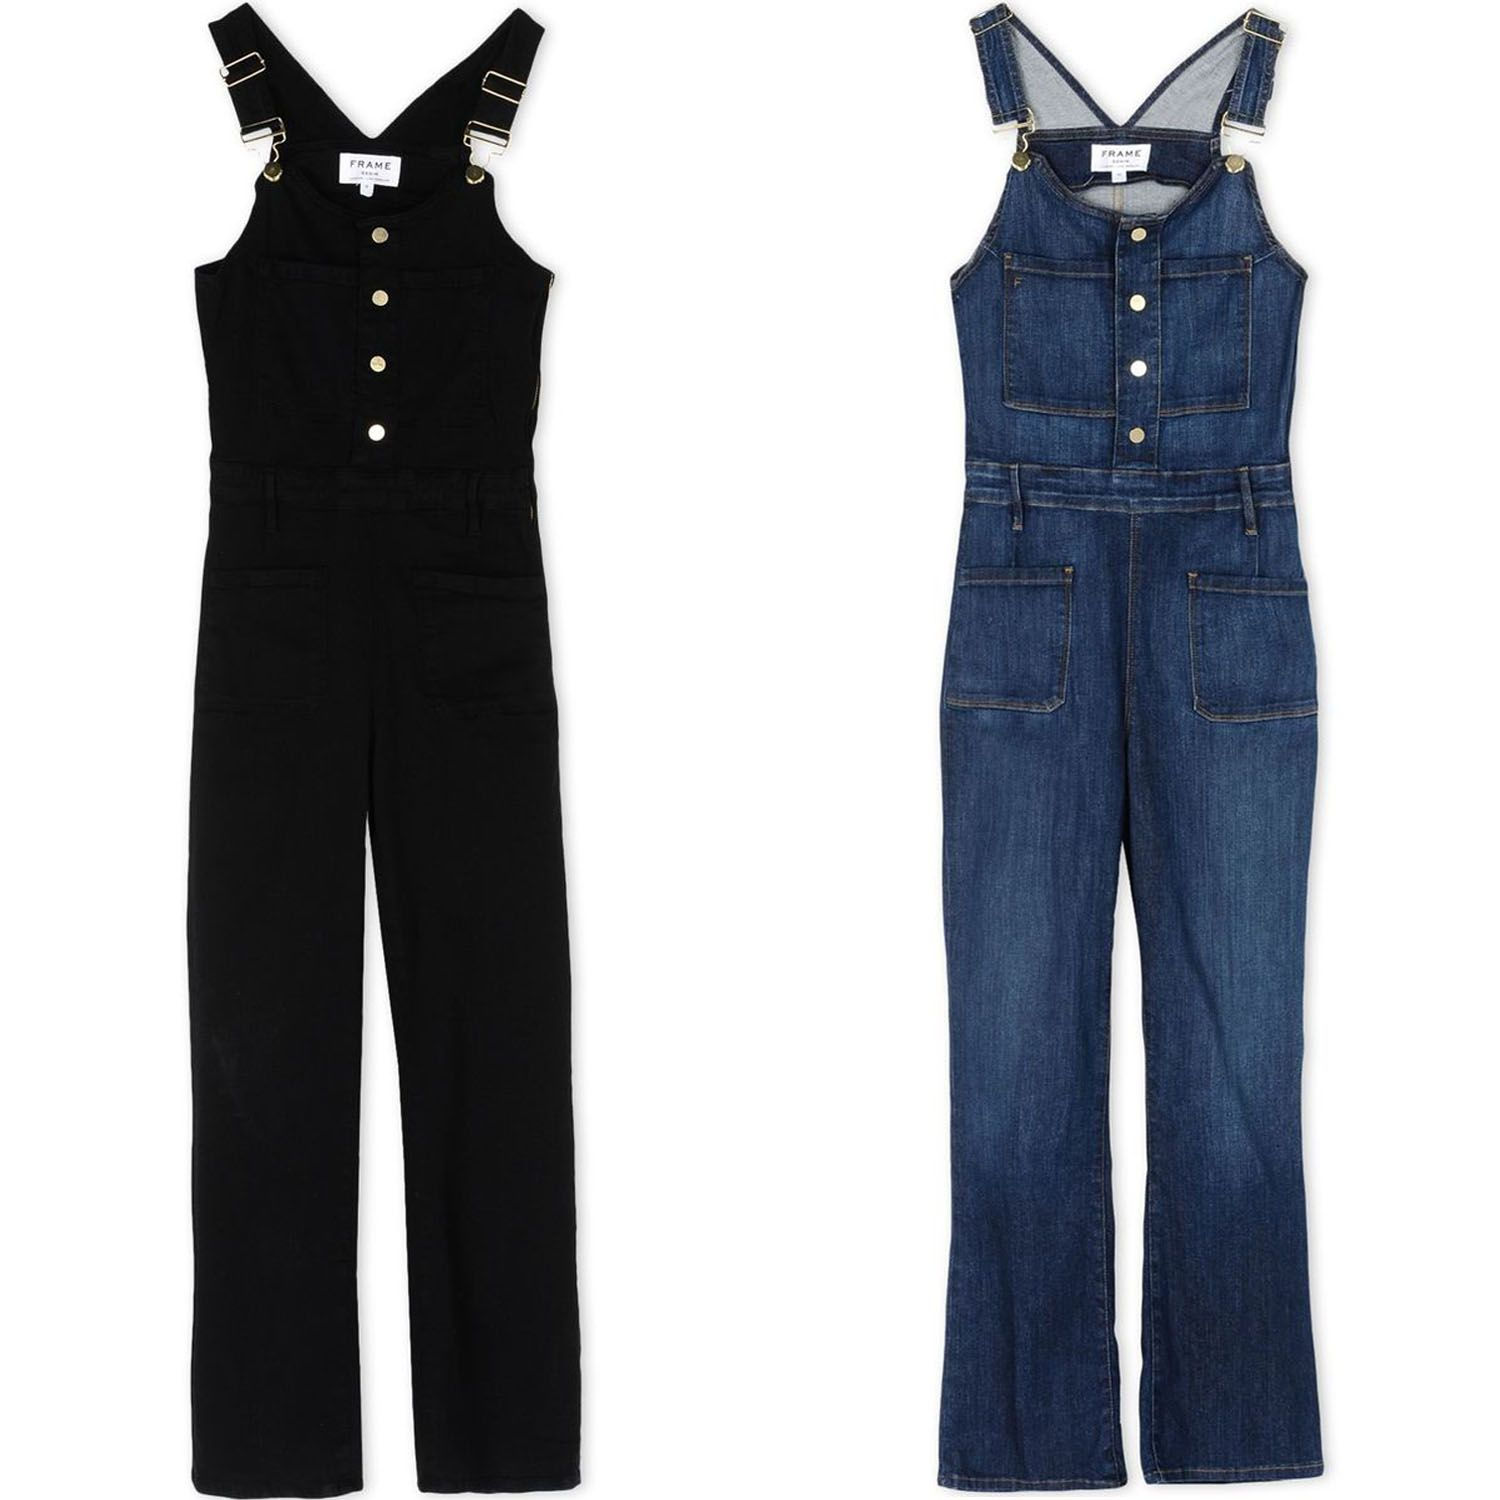 "<p>When it comes to lazy days on a blanket you can't go past the laziest way to get dressed: a ""onesie."" Our choice? Downtown-<em>esque</em> denim overalls. </p><p><br></p><p><em><strong>Frame</strong> black denim overall, $234 (sale), <strong><a href=""https://shop.harpersbazaar.com/designers/f/frame/black-denim-overall-9245.html"" target=""_blank"">shopBAZAAR.com</a></strong></em><span class=""redactor-invisible-space""><em>; <strong>Frame</strong> blue denim overall, $234 (sale), <strong><a href=""https://shop.harpersbazaar.com/designers/f/frame/denim-overall-9244.html"" target=""_blank"">shopBAZAAR.com</a></strong></em><span class=""redactor-invisible-space""><em>.</em></span><br></span></p>"